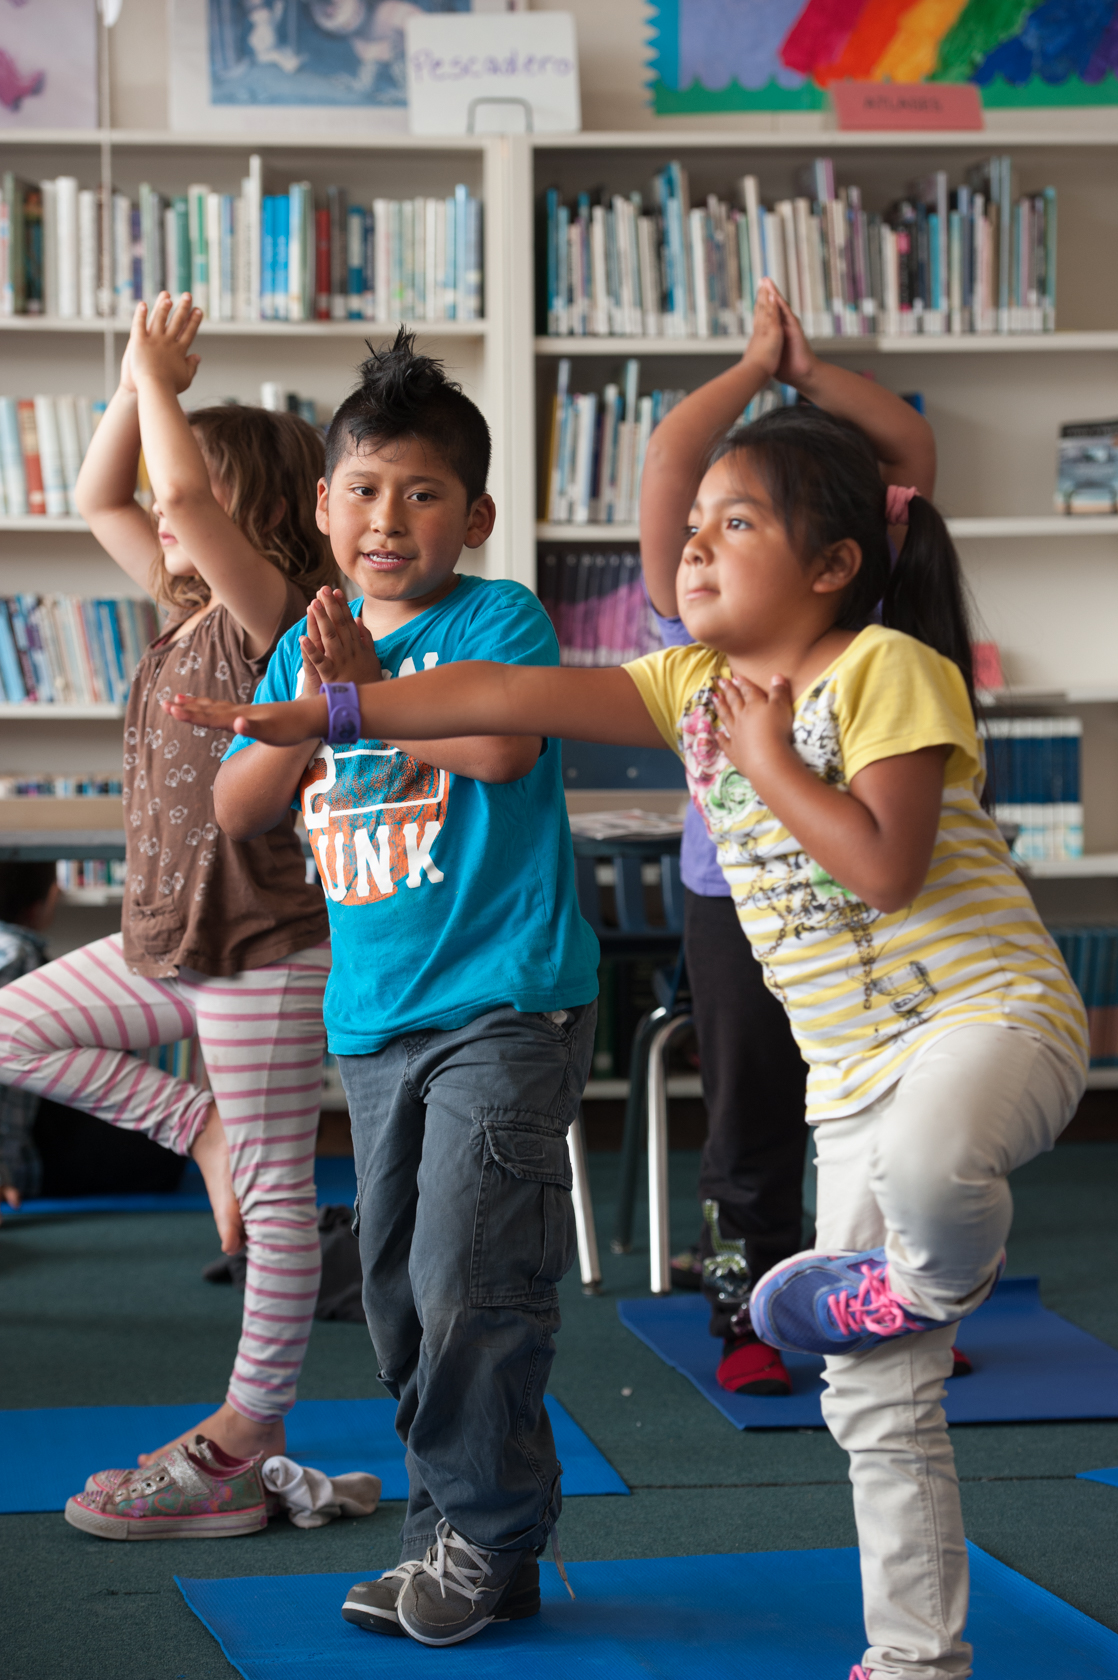 Children participating in yoga at the Library.